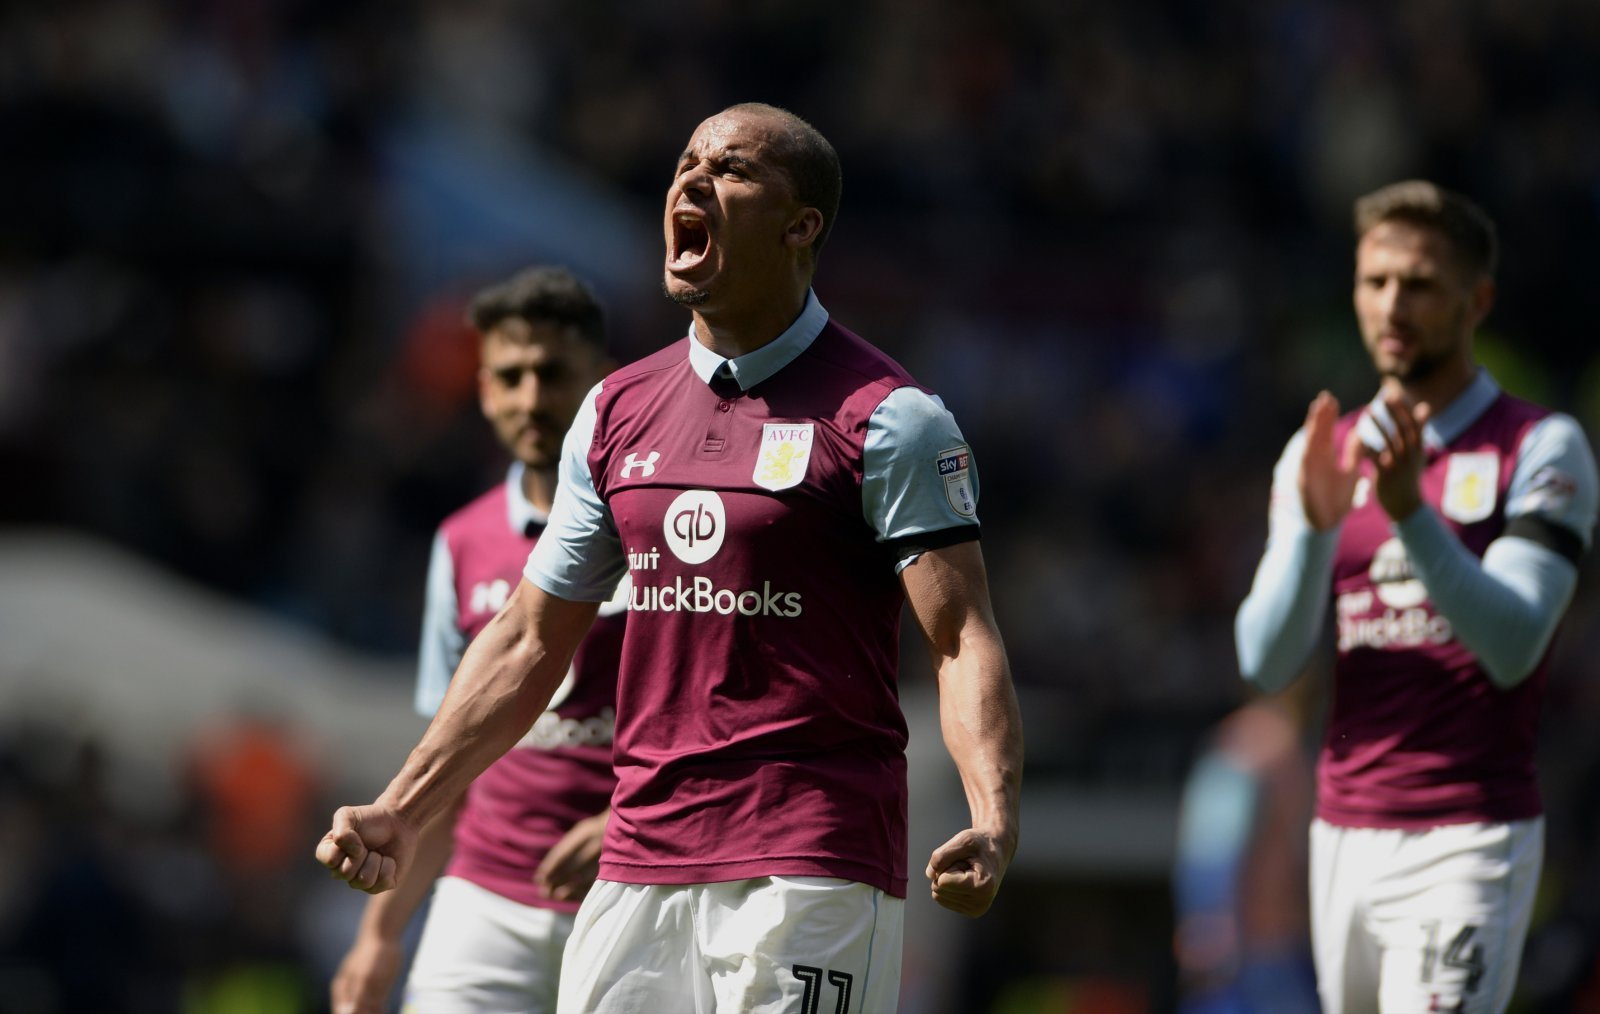 Leeds should further reinforce their attack by signing free agent Agbonlahor